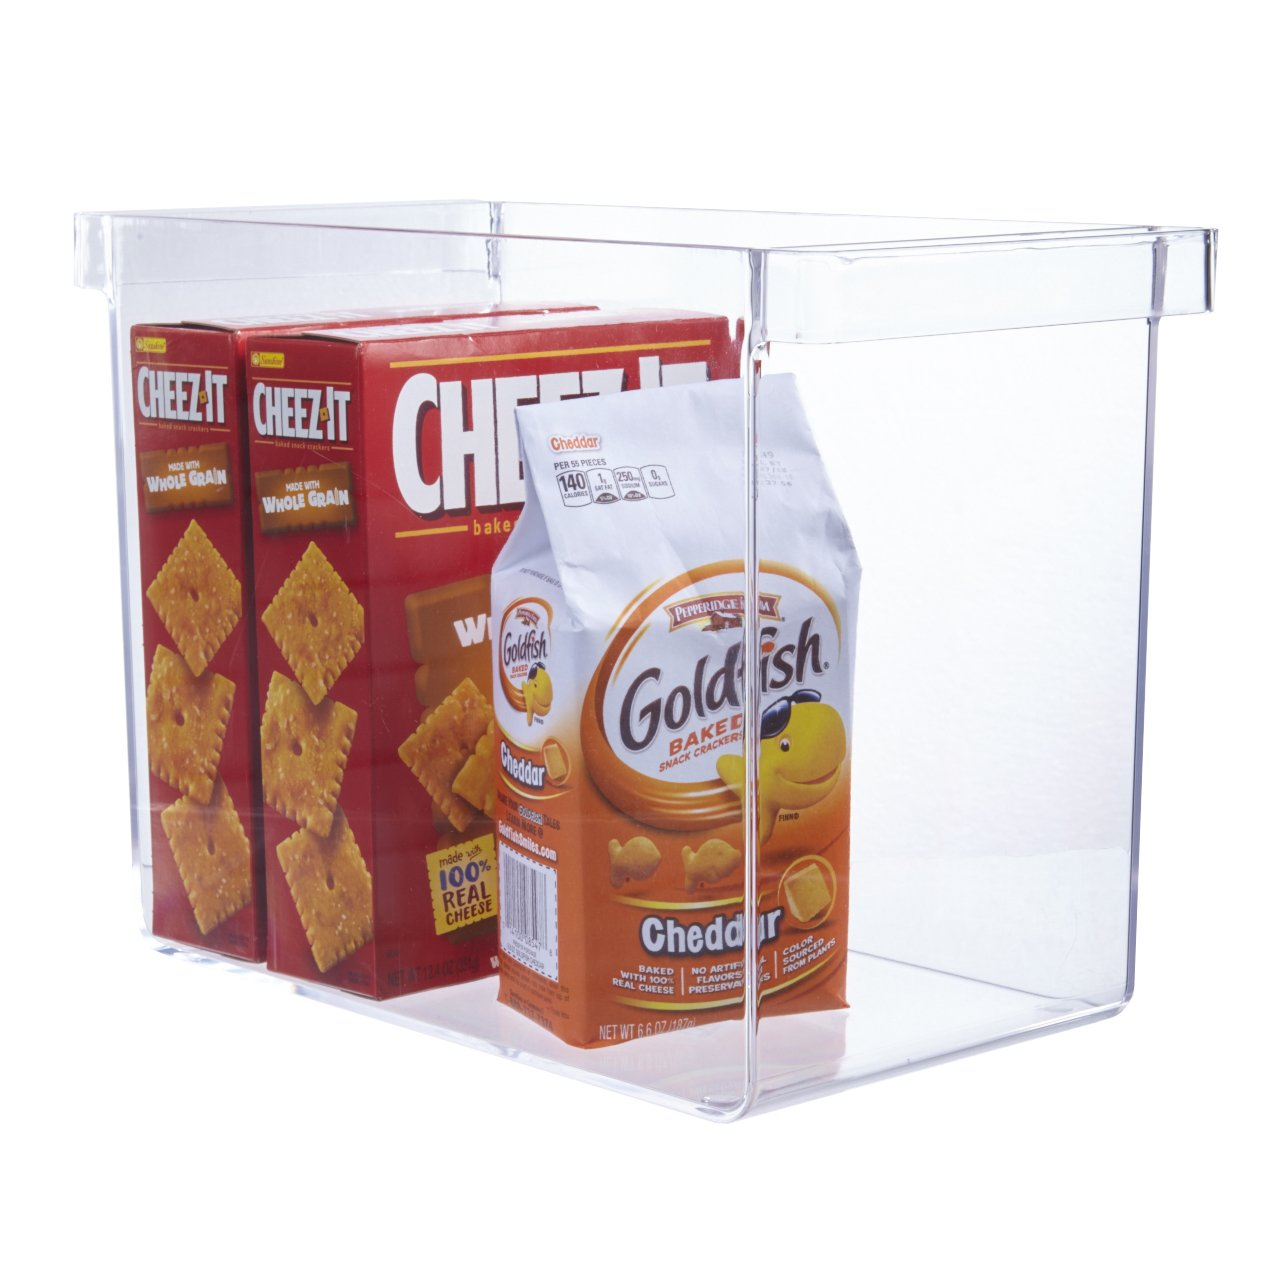 Clear Plastic Pantry Organizer Bin with Handles